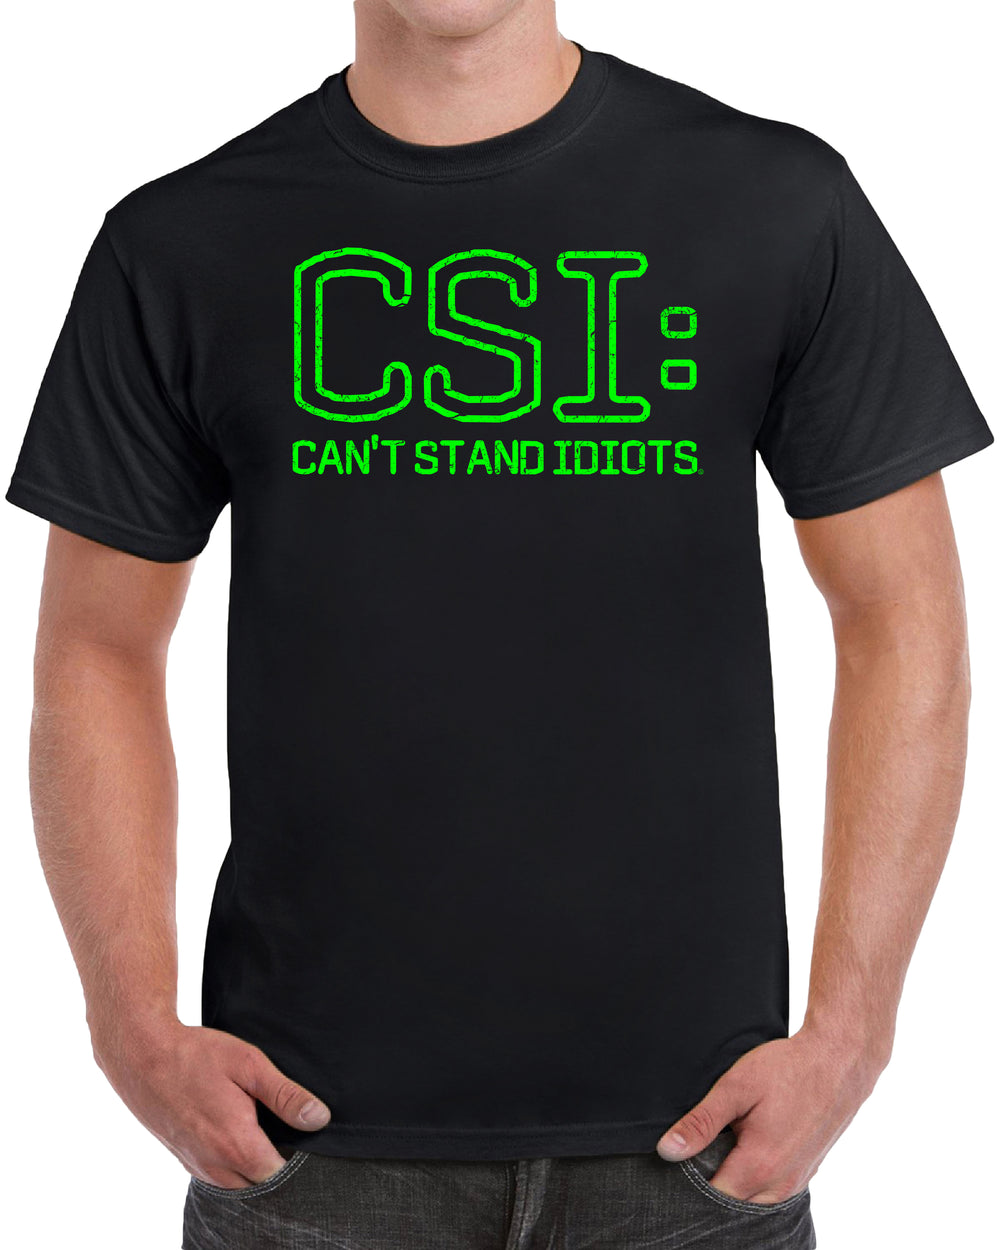 CSI: Can't Stand Idiots